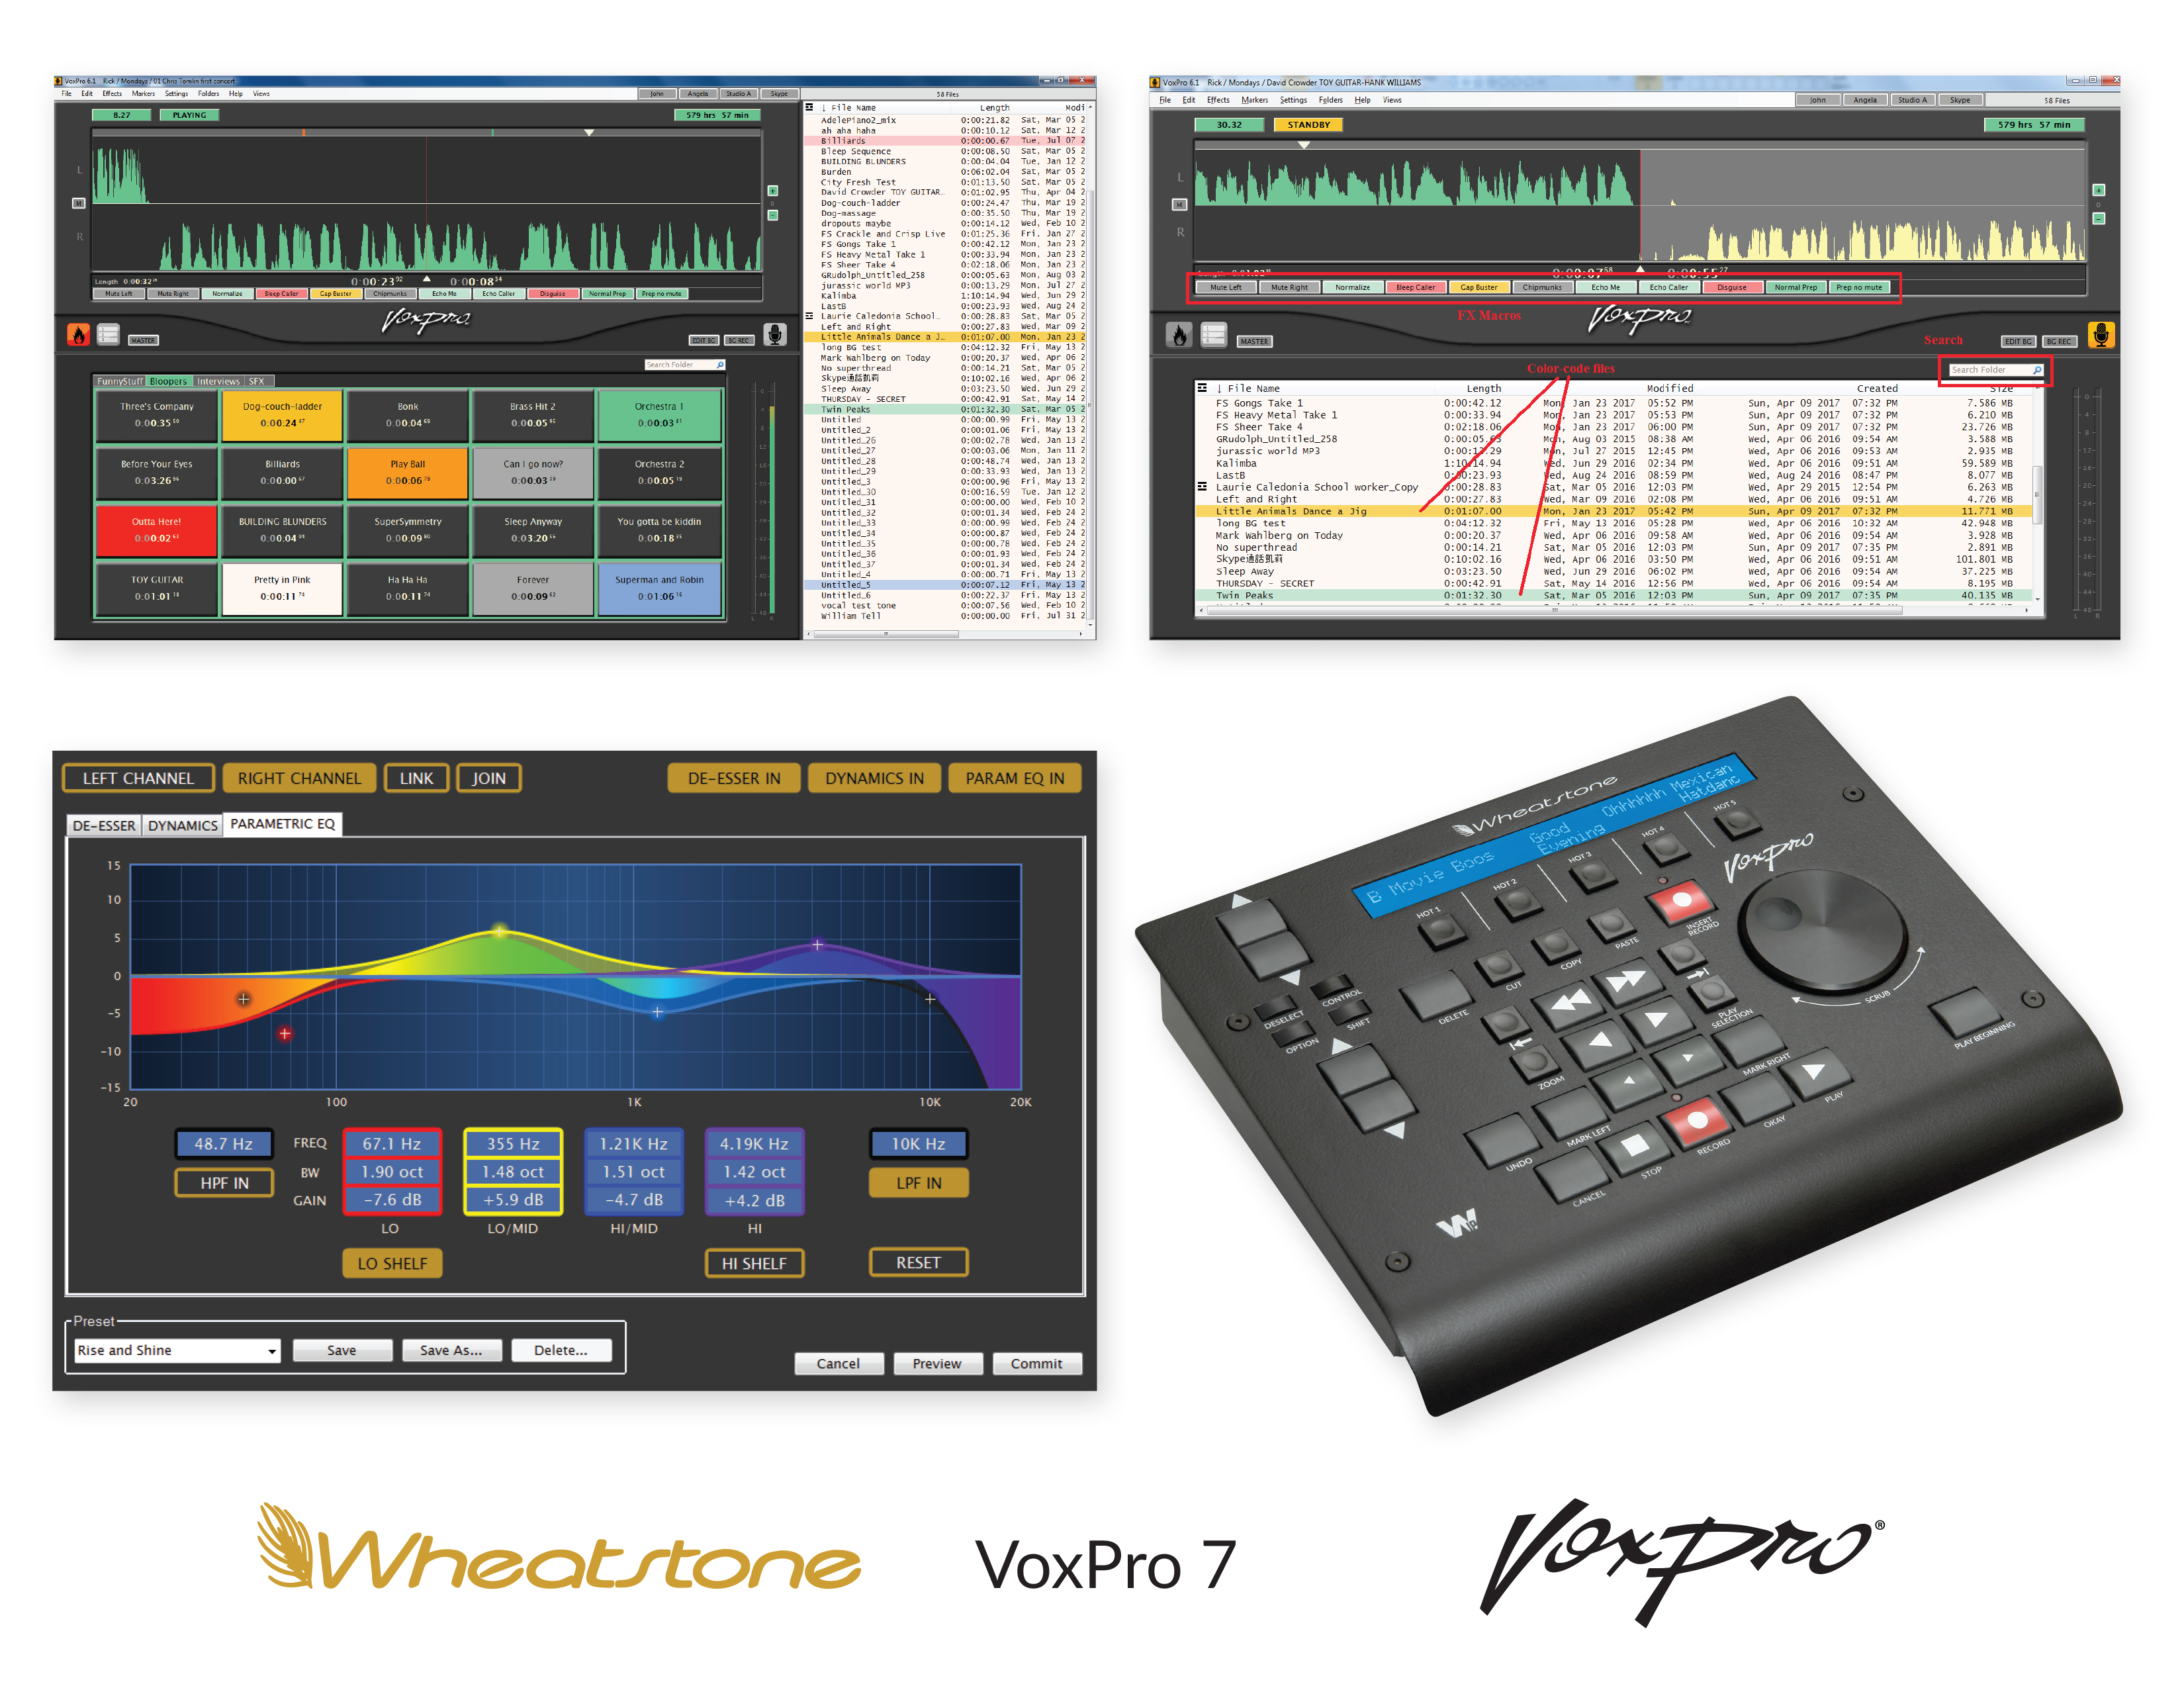 WHEATSTONE, RADIO AIR-PERSONALITY DEBUT NEW VOXPRO 7 AT NAB 2017